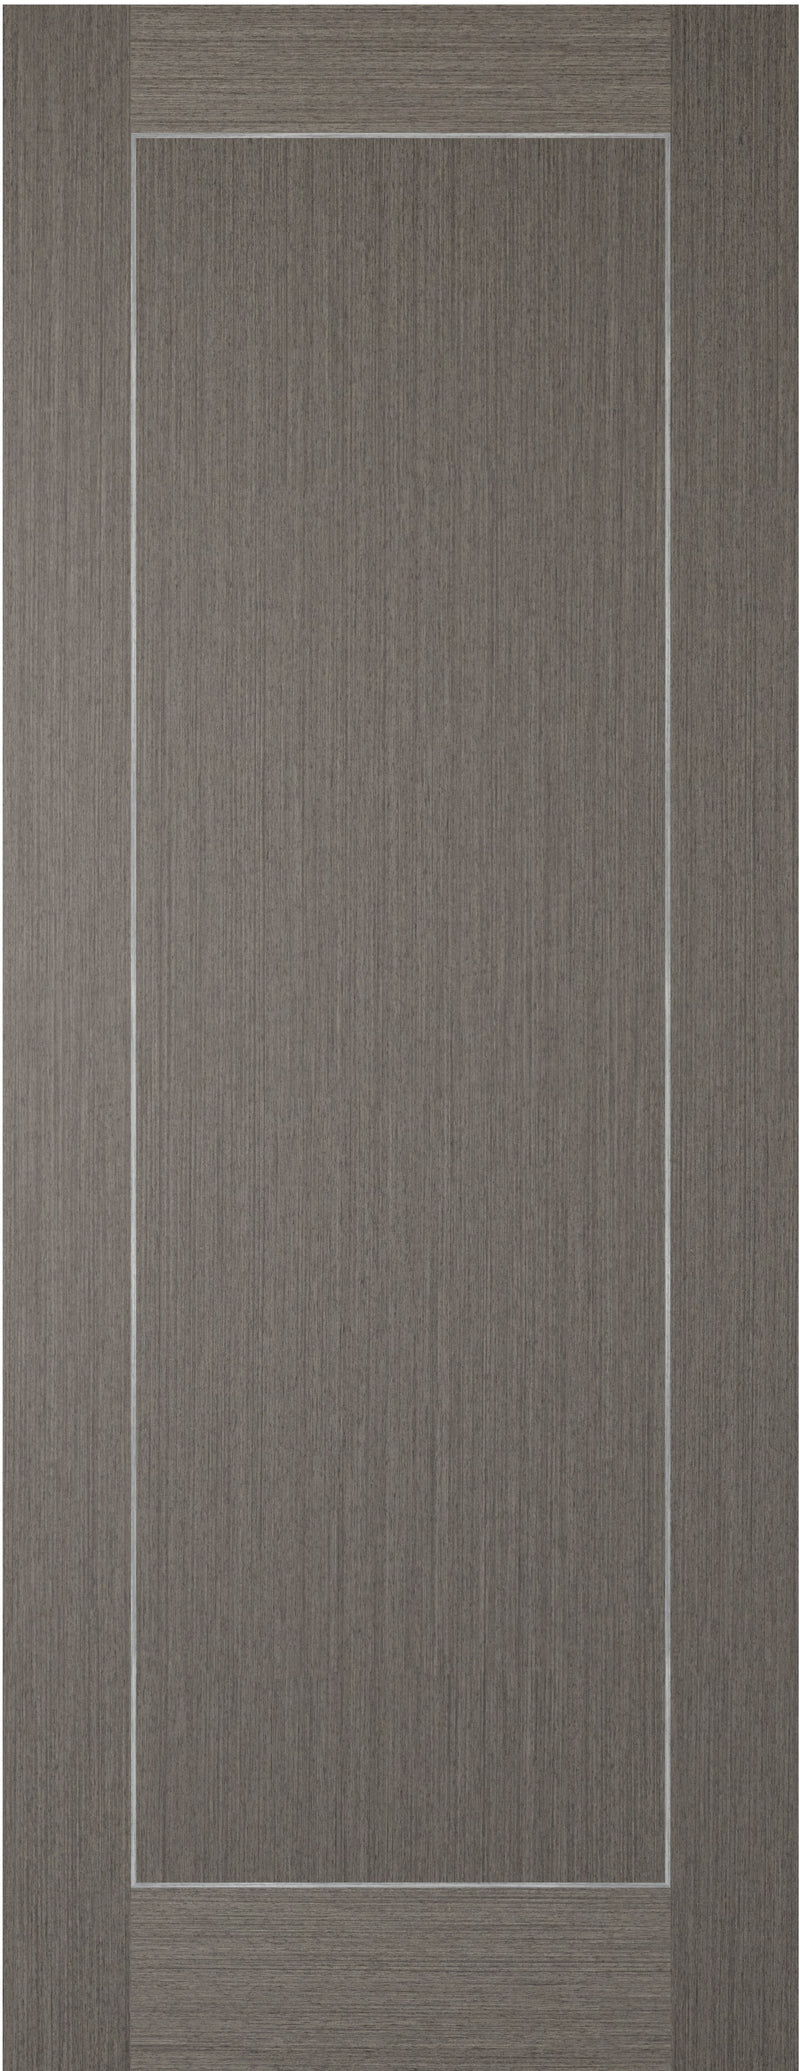 Chocolate grey 1 panel inlay fire door.